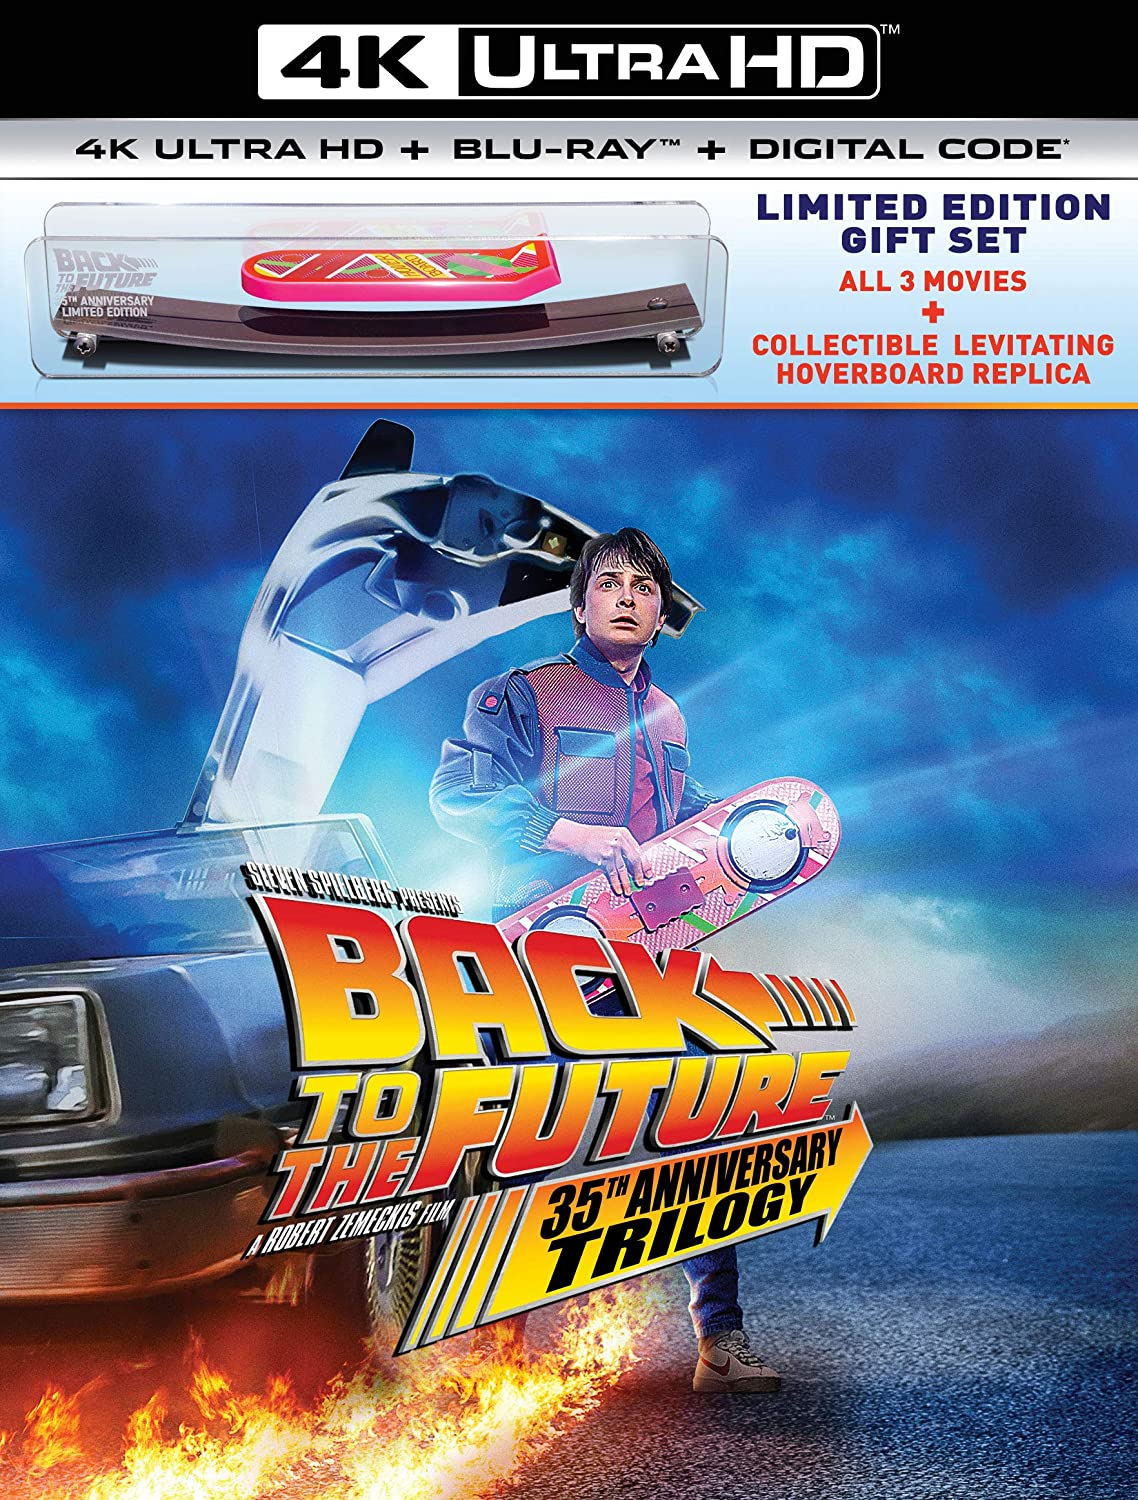 Back To The Future 35th Anniversary Trilogy Giftset 4k Uhd Michael J Fox Christopher Lloyd Lea Thompson Thomas F Wilson Crispin Glover Claudia Wells Casey Siemaszko Billy Zane Mary Steenburgen Elisabeth